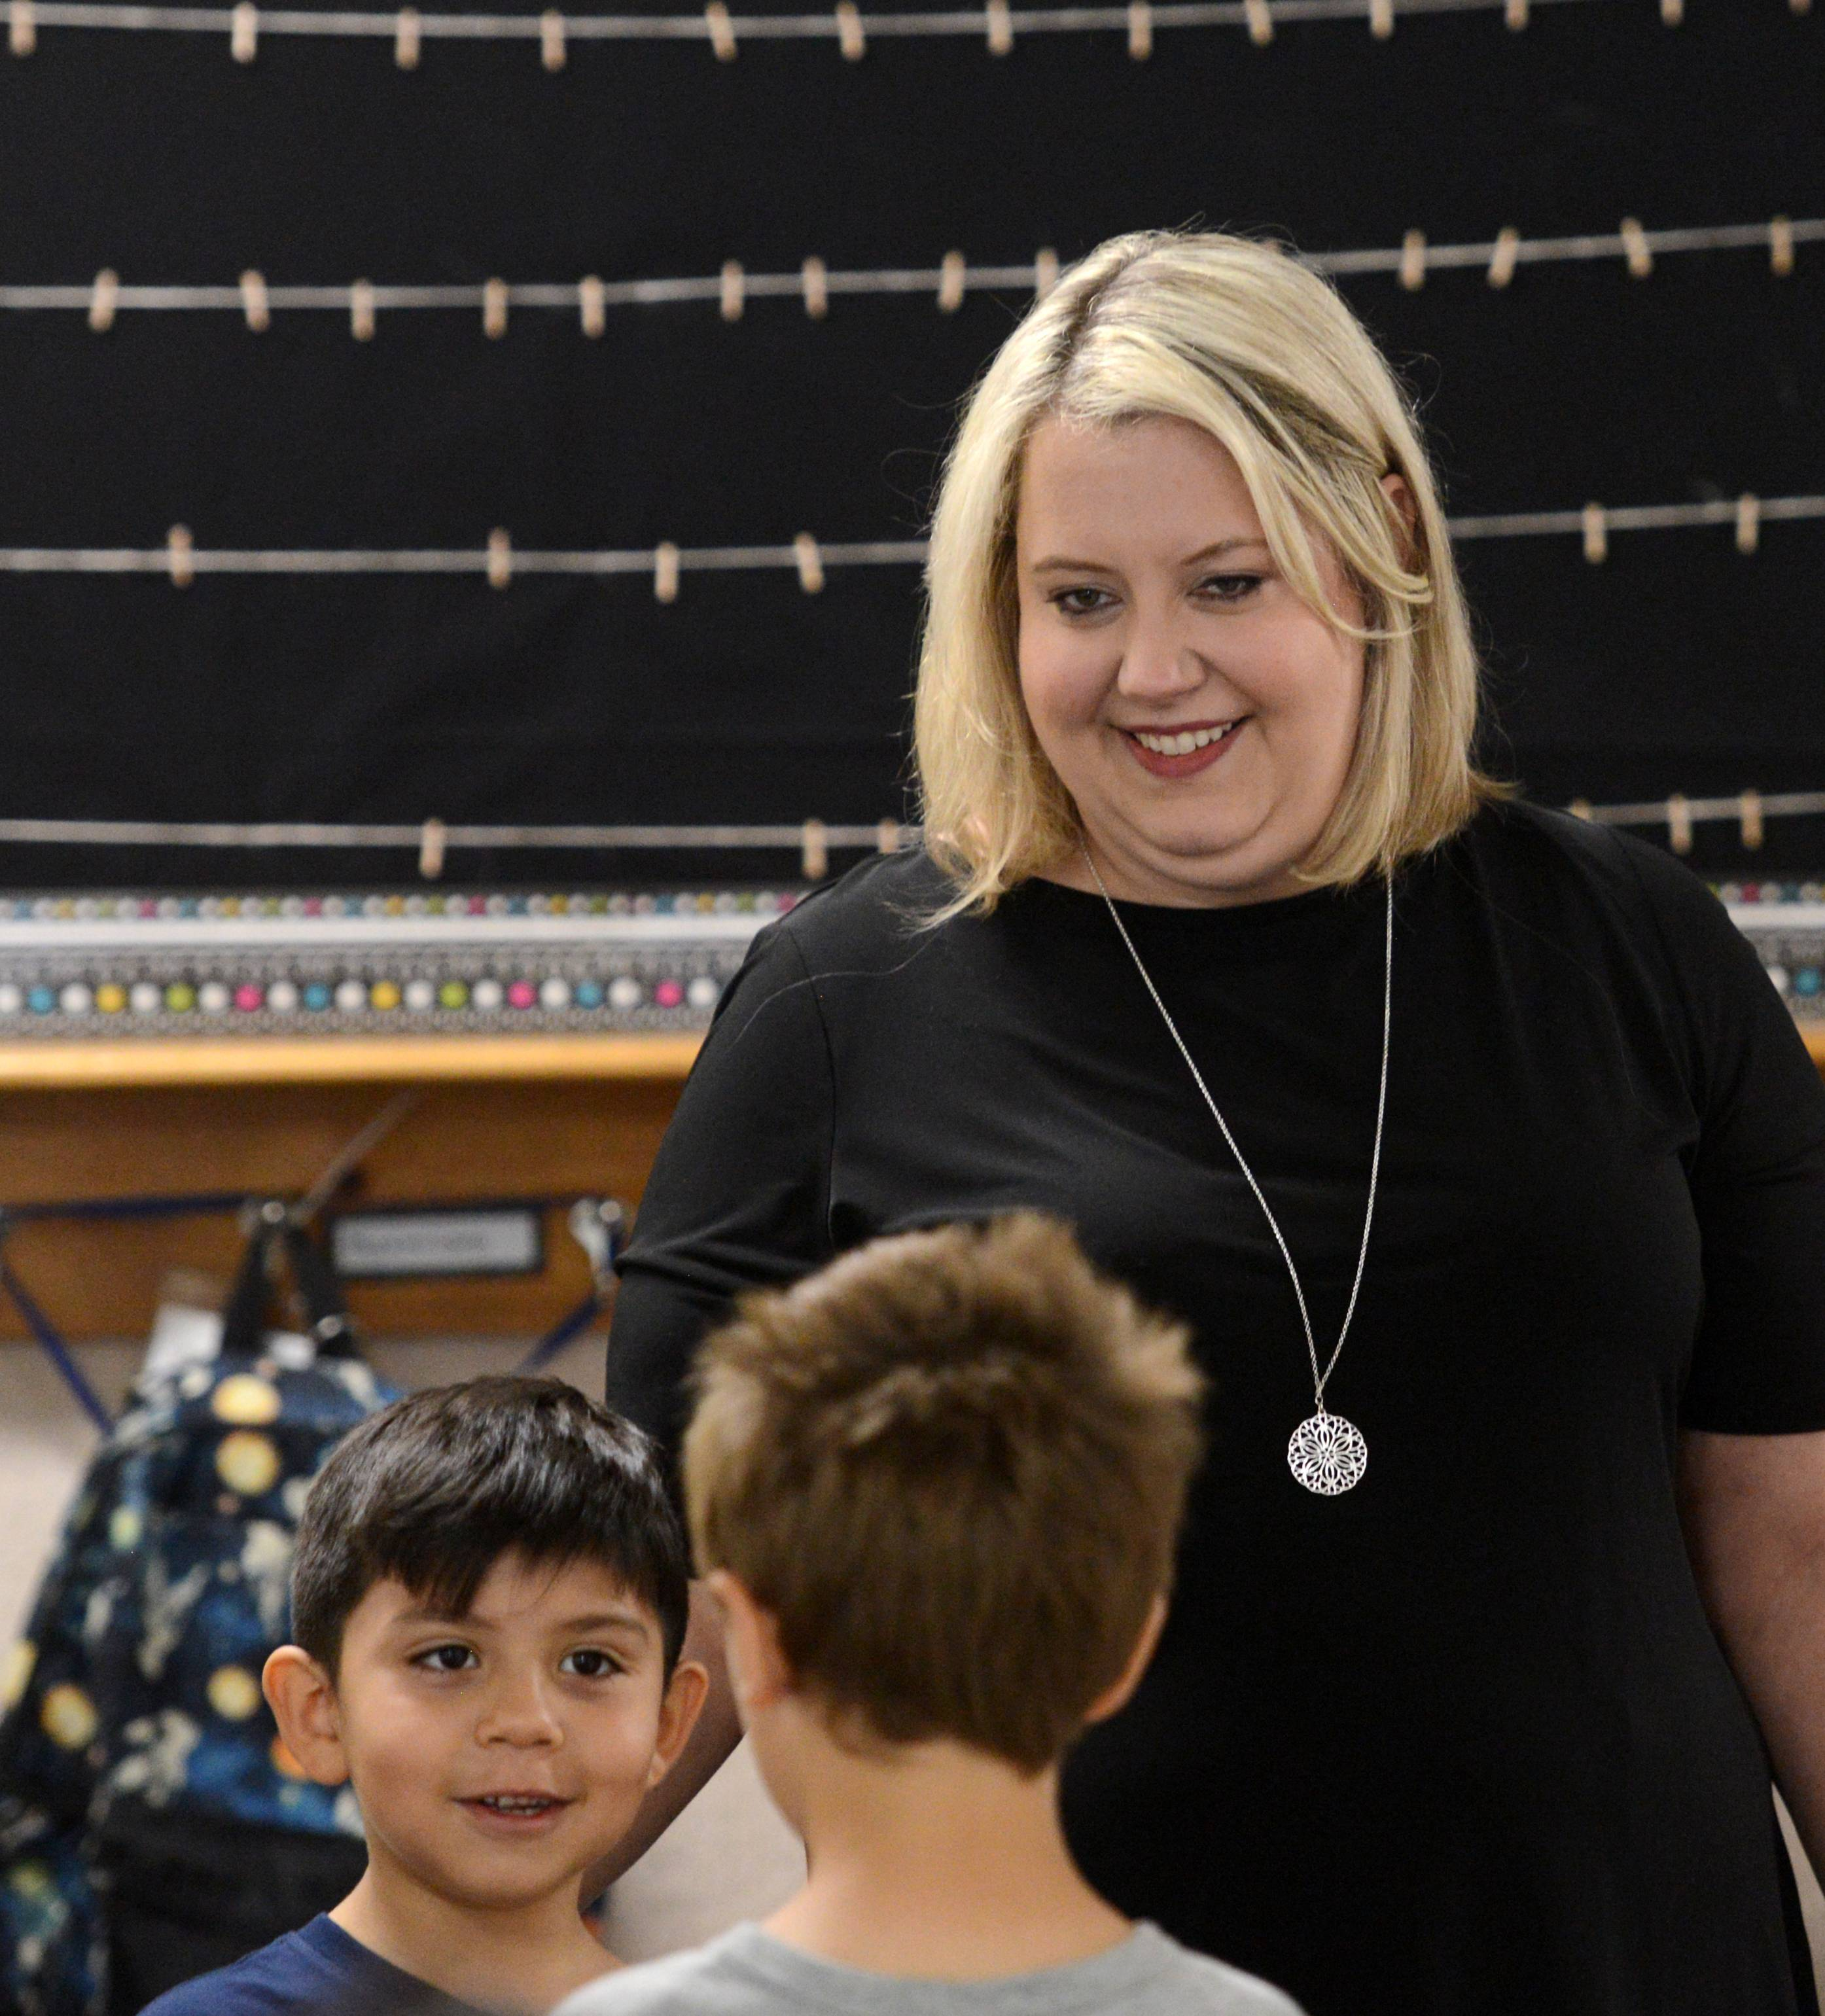 Sara Magnafichi, a first-grade teacher at Admiral Byrd Elementary School in Elk Grove Township Elementary District 59, is a top 10 finalist for Illinois Teacher of the Year.